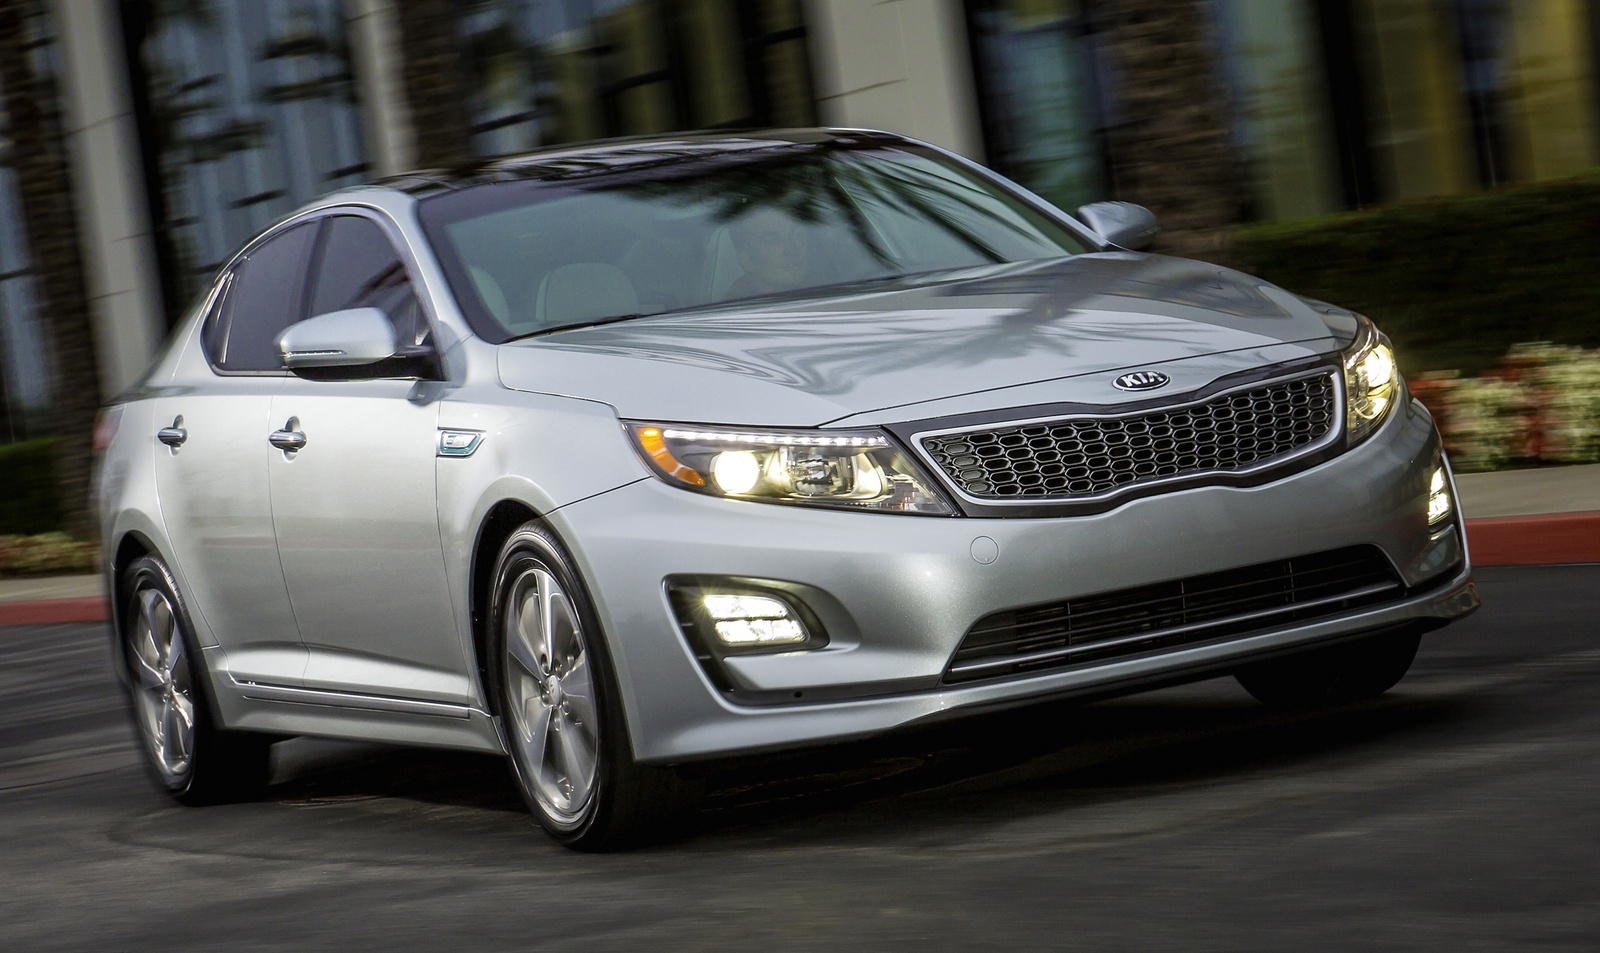 2015 Kia Optima Hybrid - Review - CarGurus